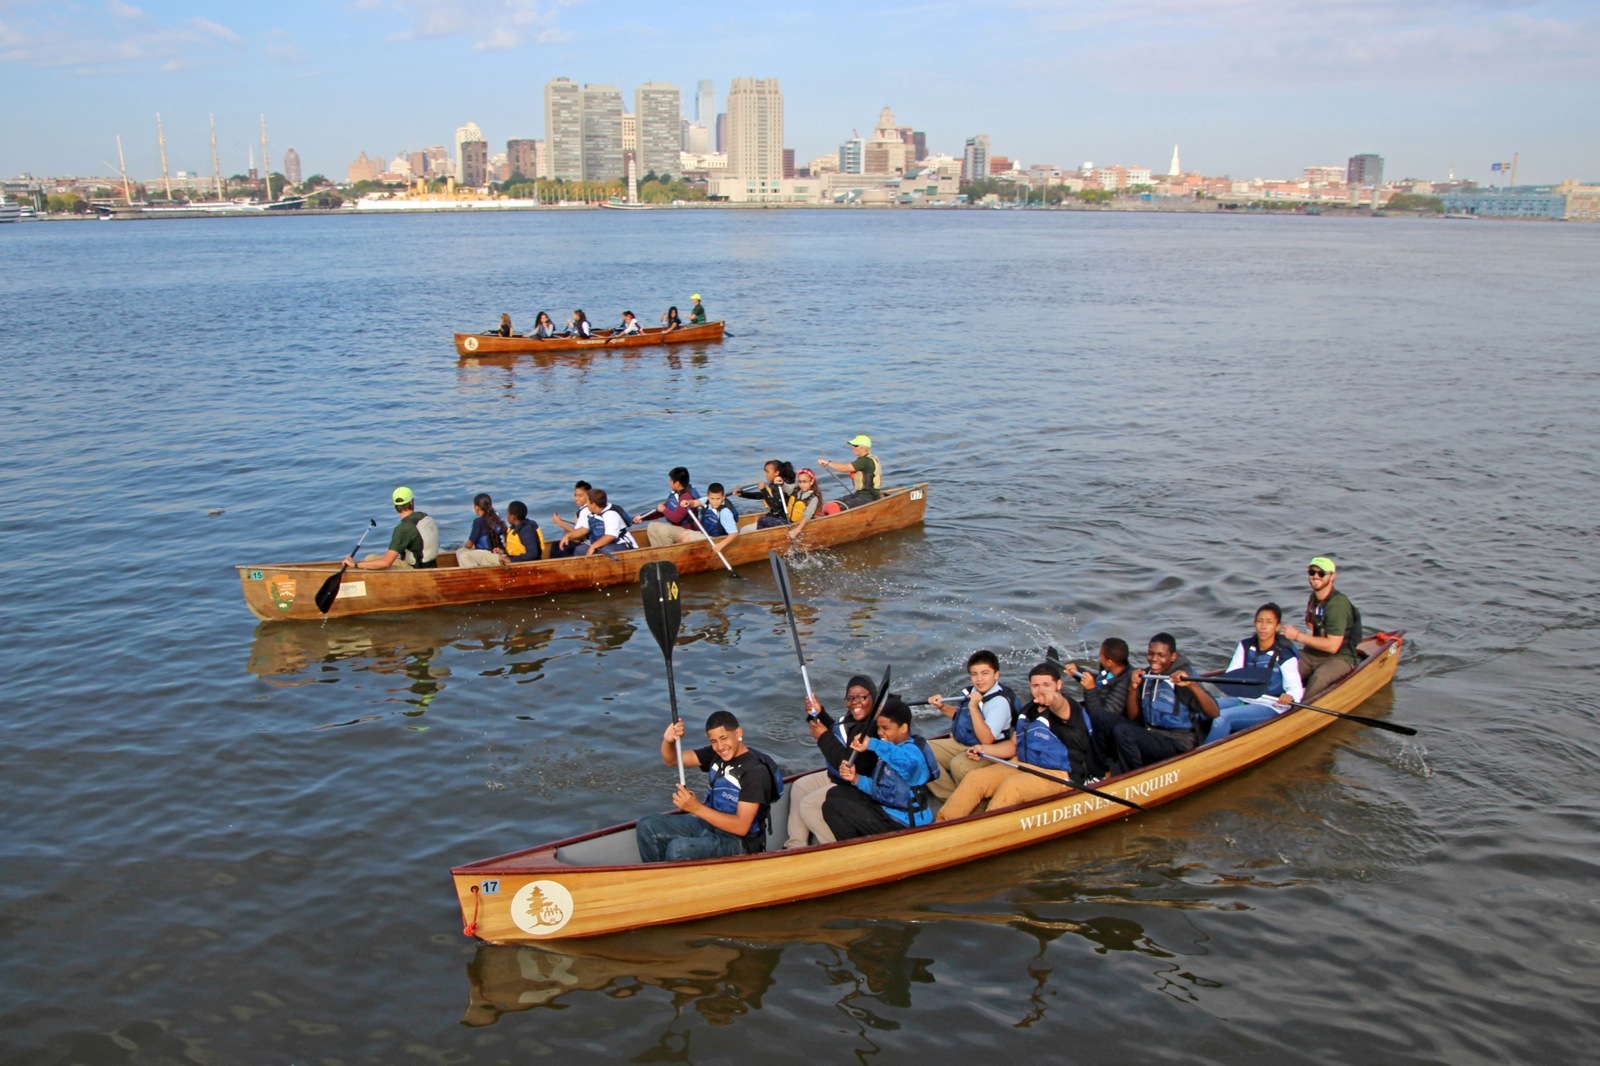 three canoes paddle along the Delaware River with the city skyline in the background